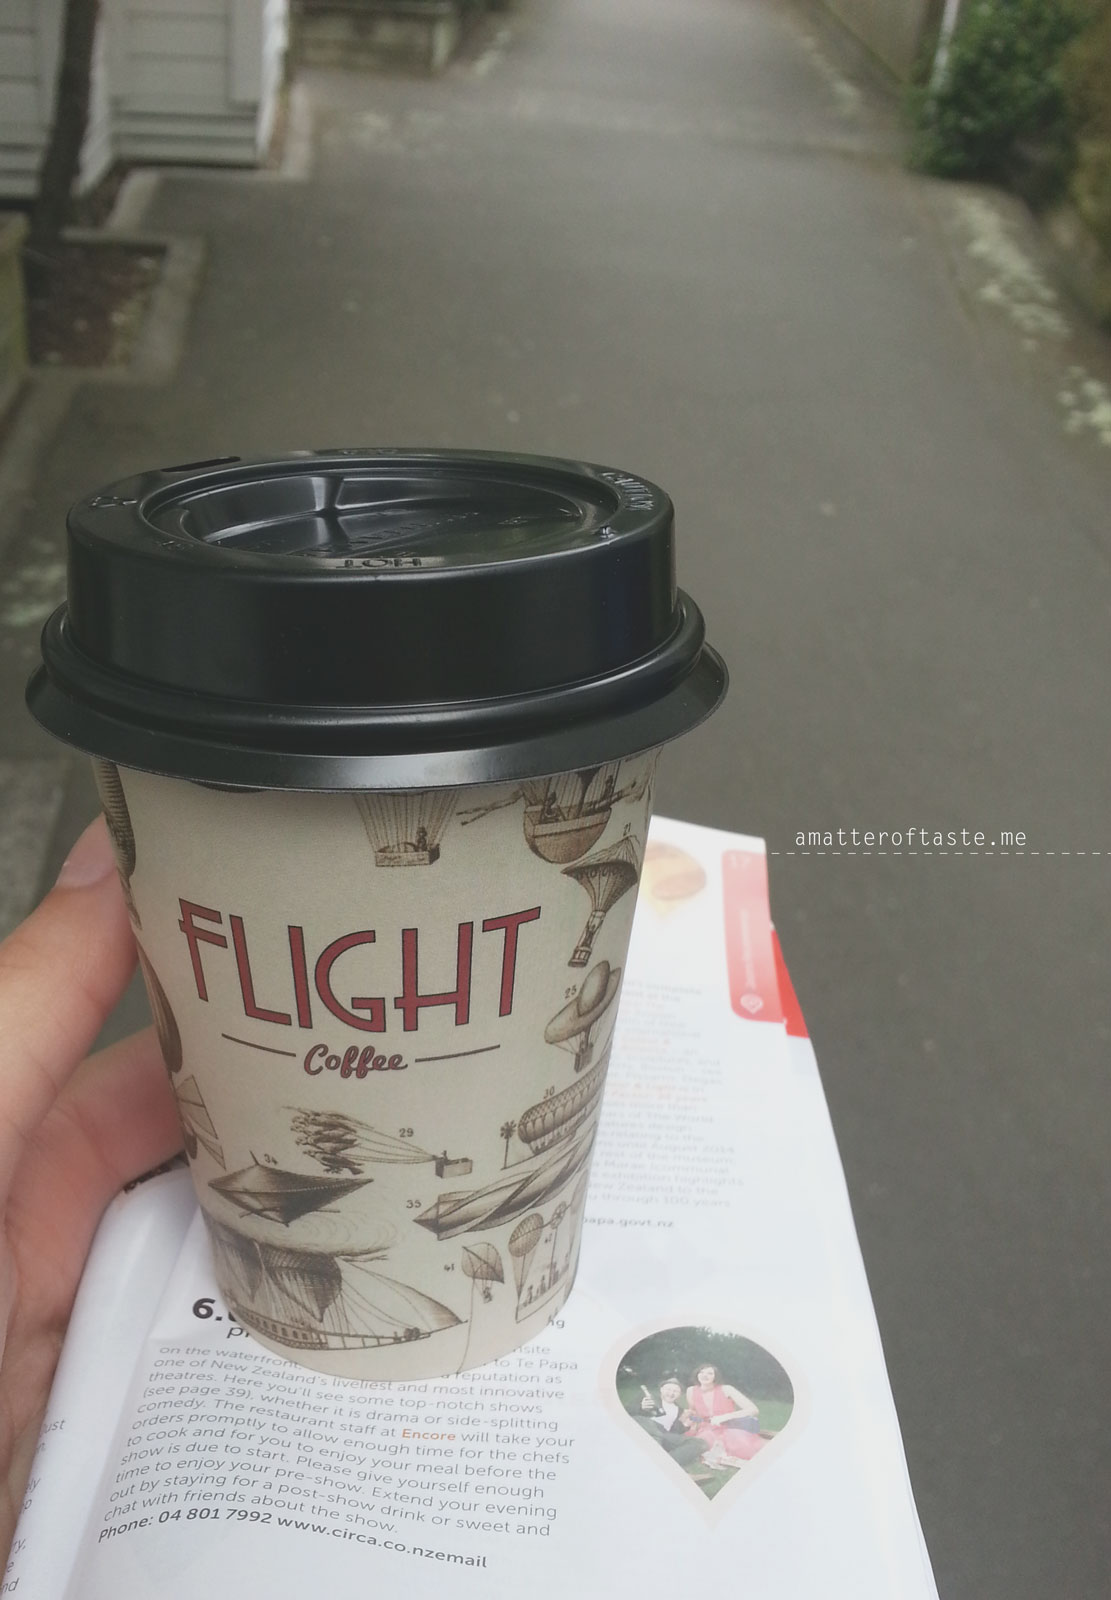 Flight Coffee the best in Wellington